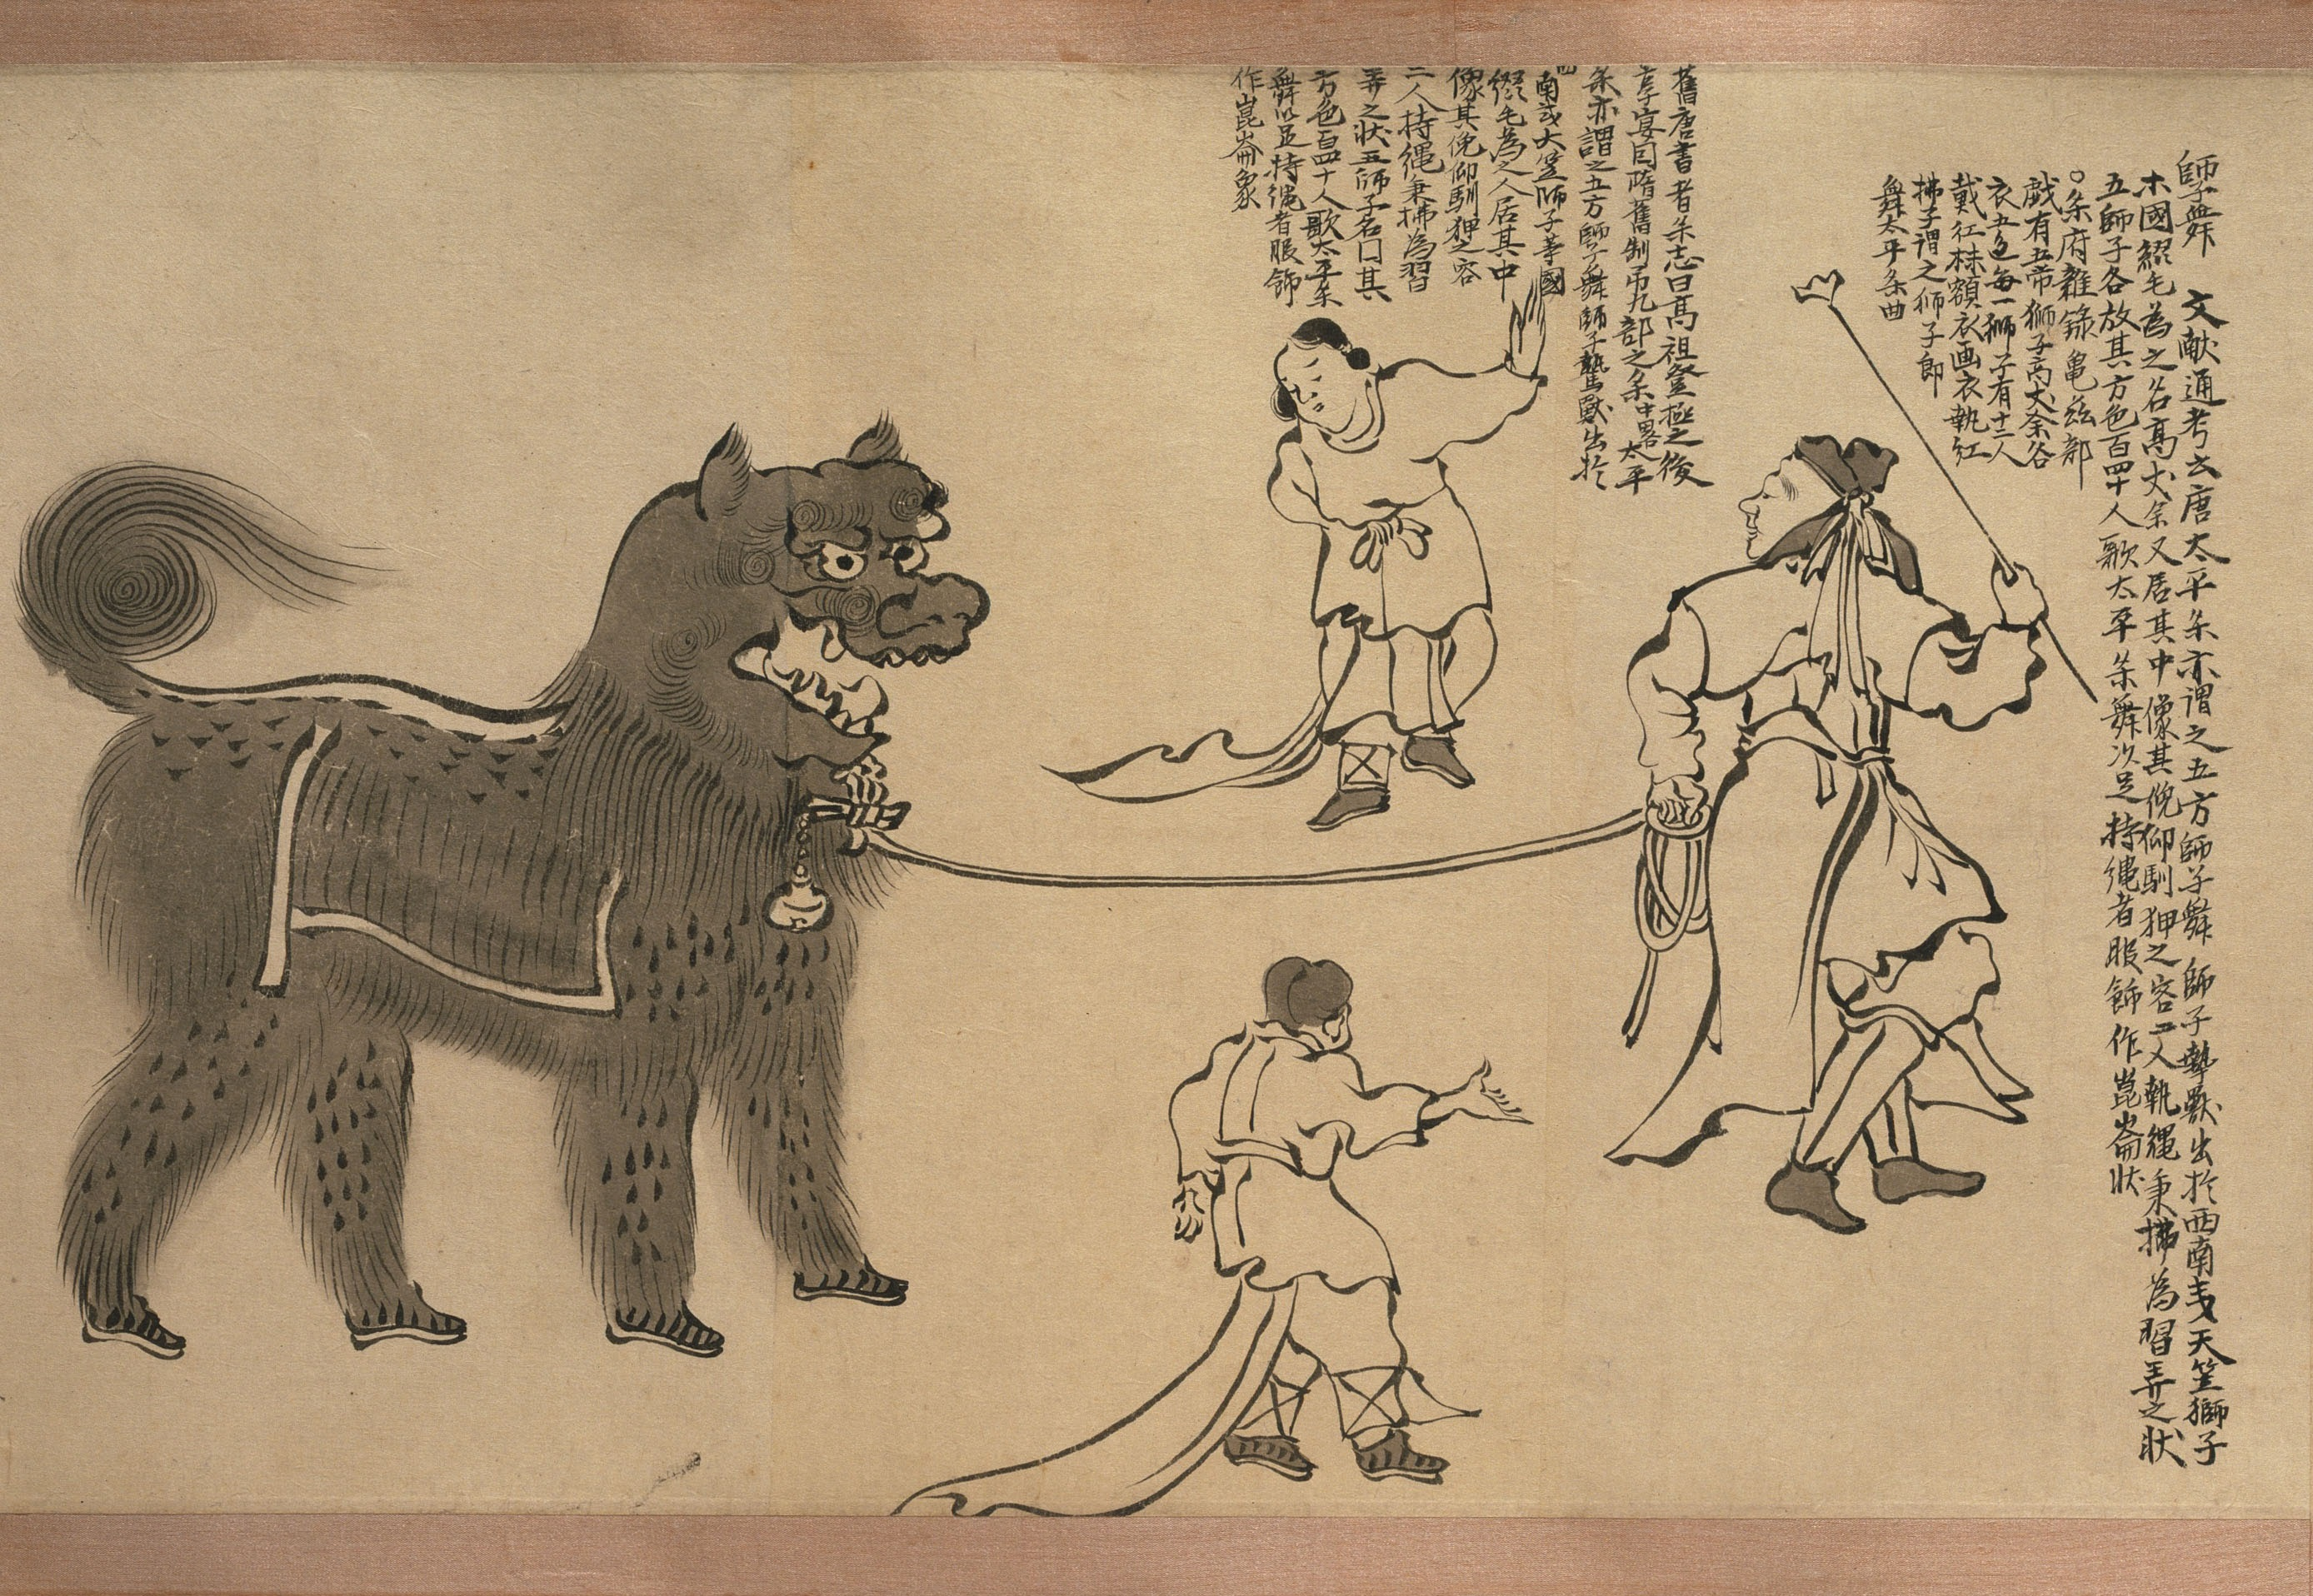 Japanese Illustration Of A Lion Dance That Some Argued Represents The Tang  Dynasty Lion Dance Described By Bai Juyi The Original Painting Is Dated To  The